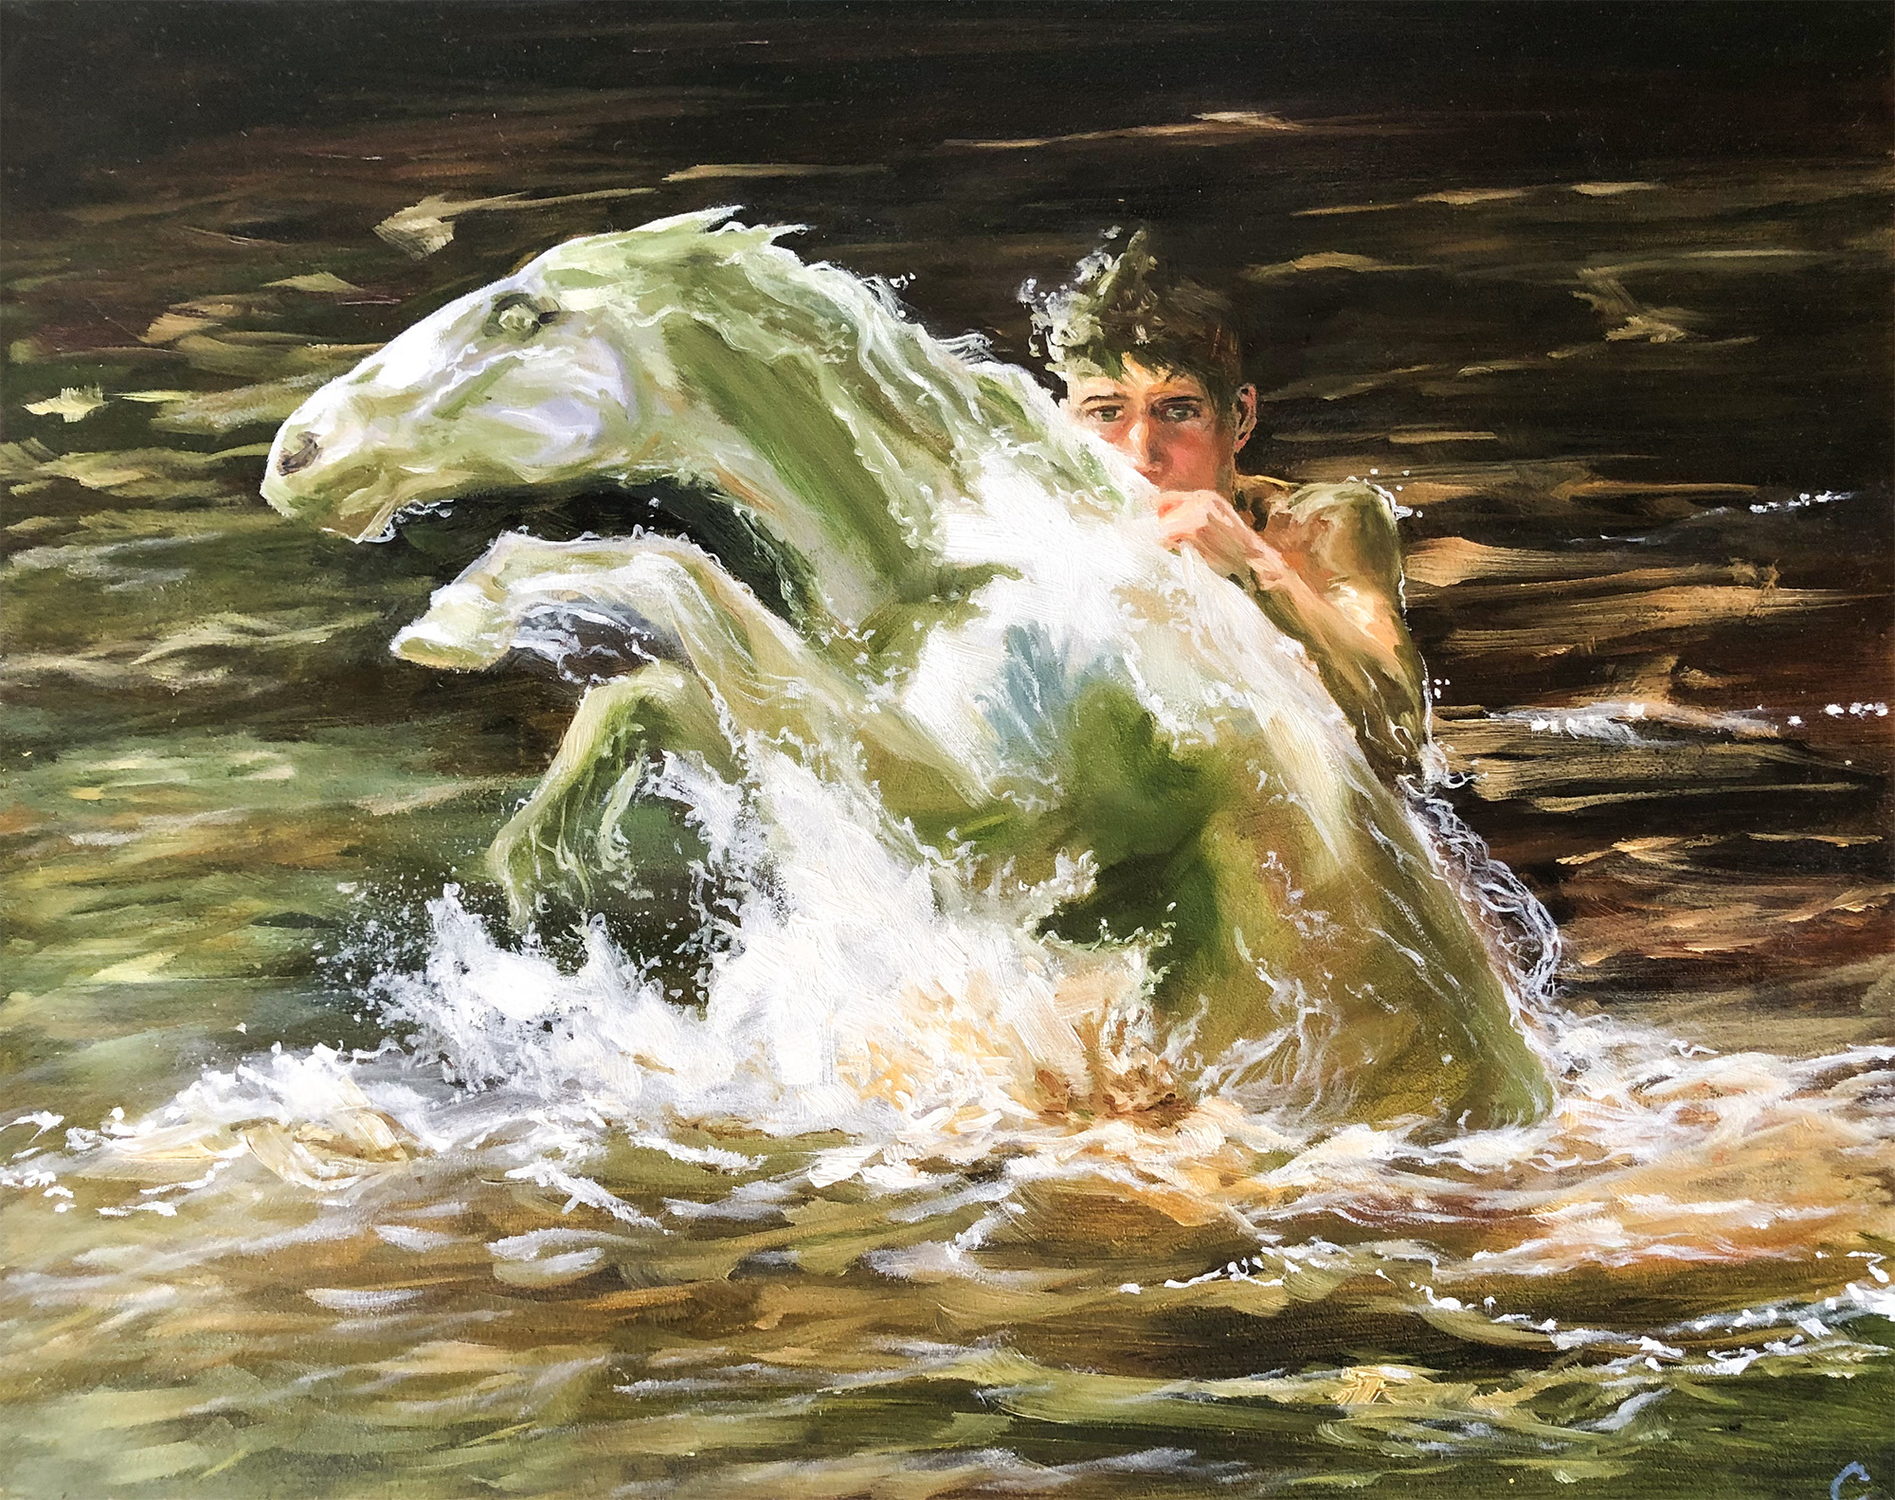 The River Axe and his Pony Artwork by Clare Henry McCanna